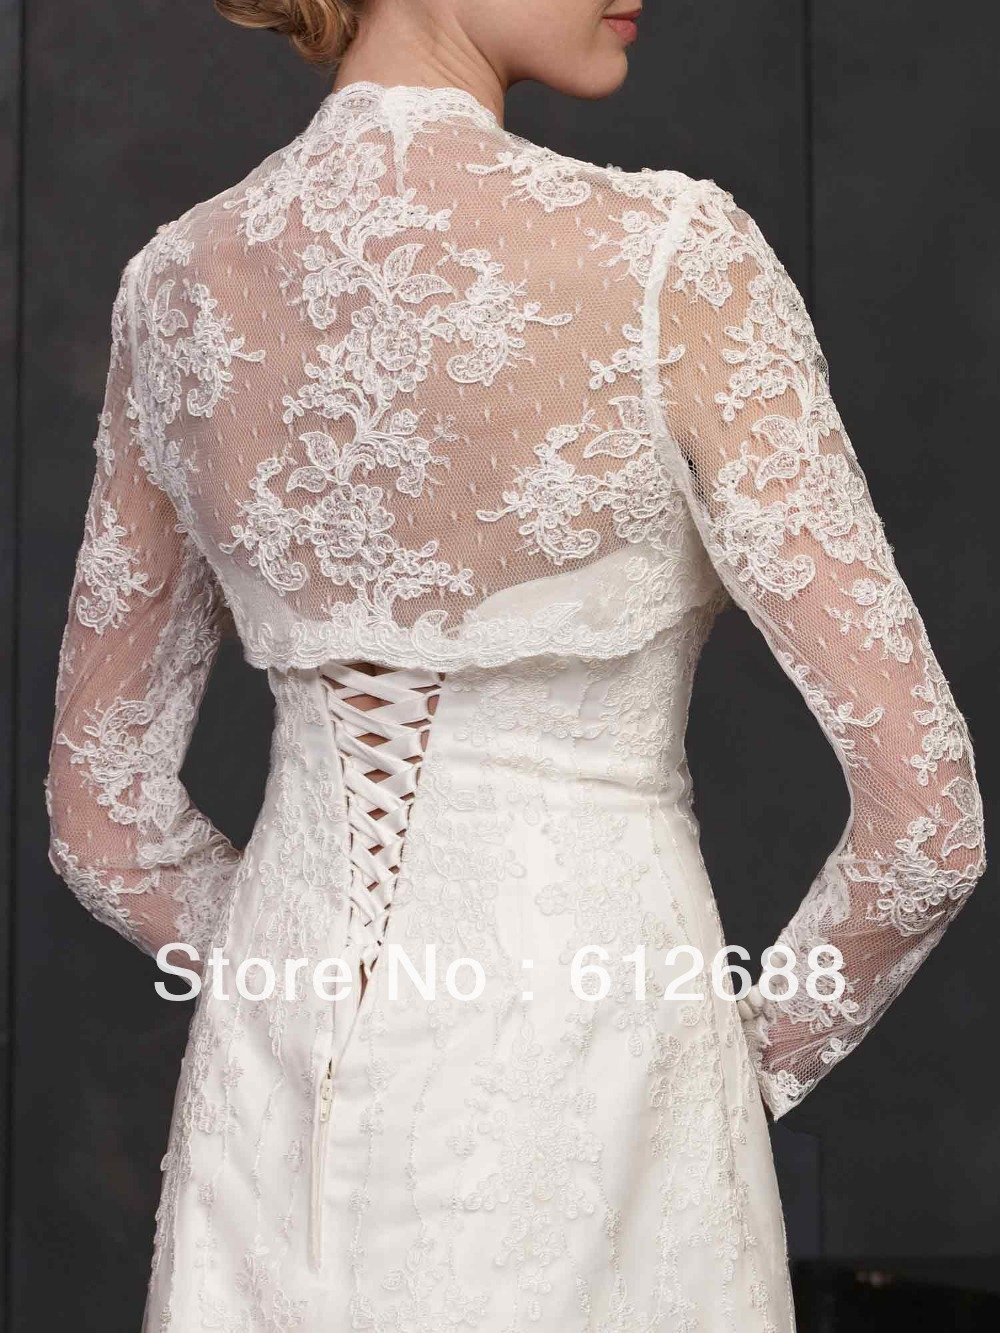 Lace jacket for wedding dress pattern